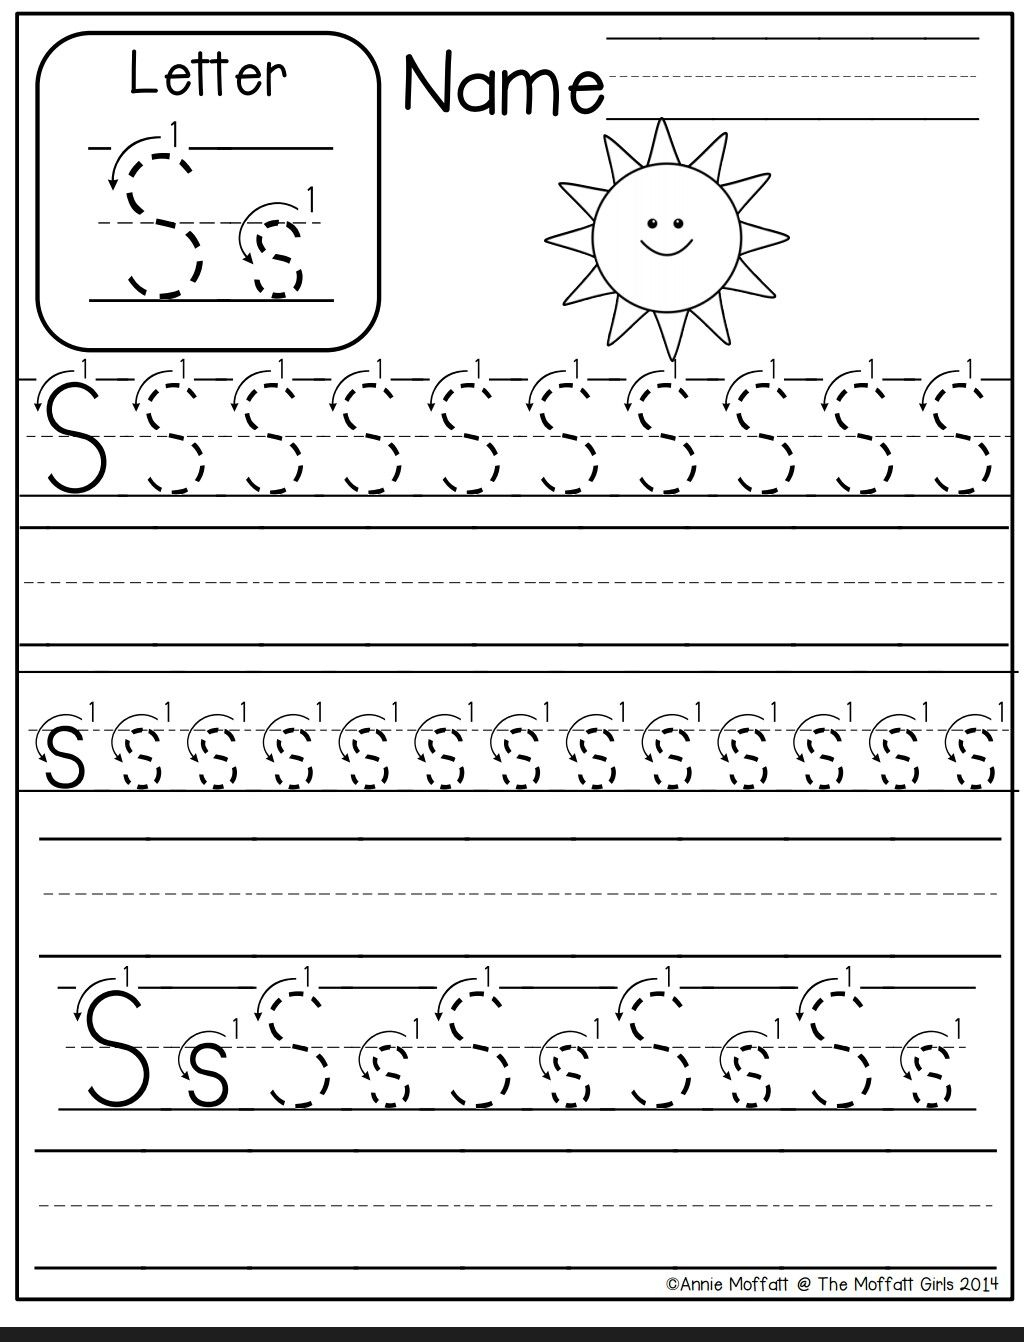 Letter S Worksheet | Preschool Writing, Letter S Worksheets pertaining to Tracing Letters S